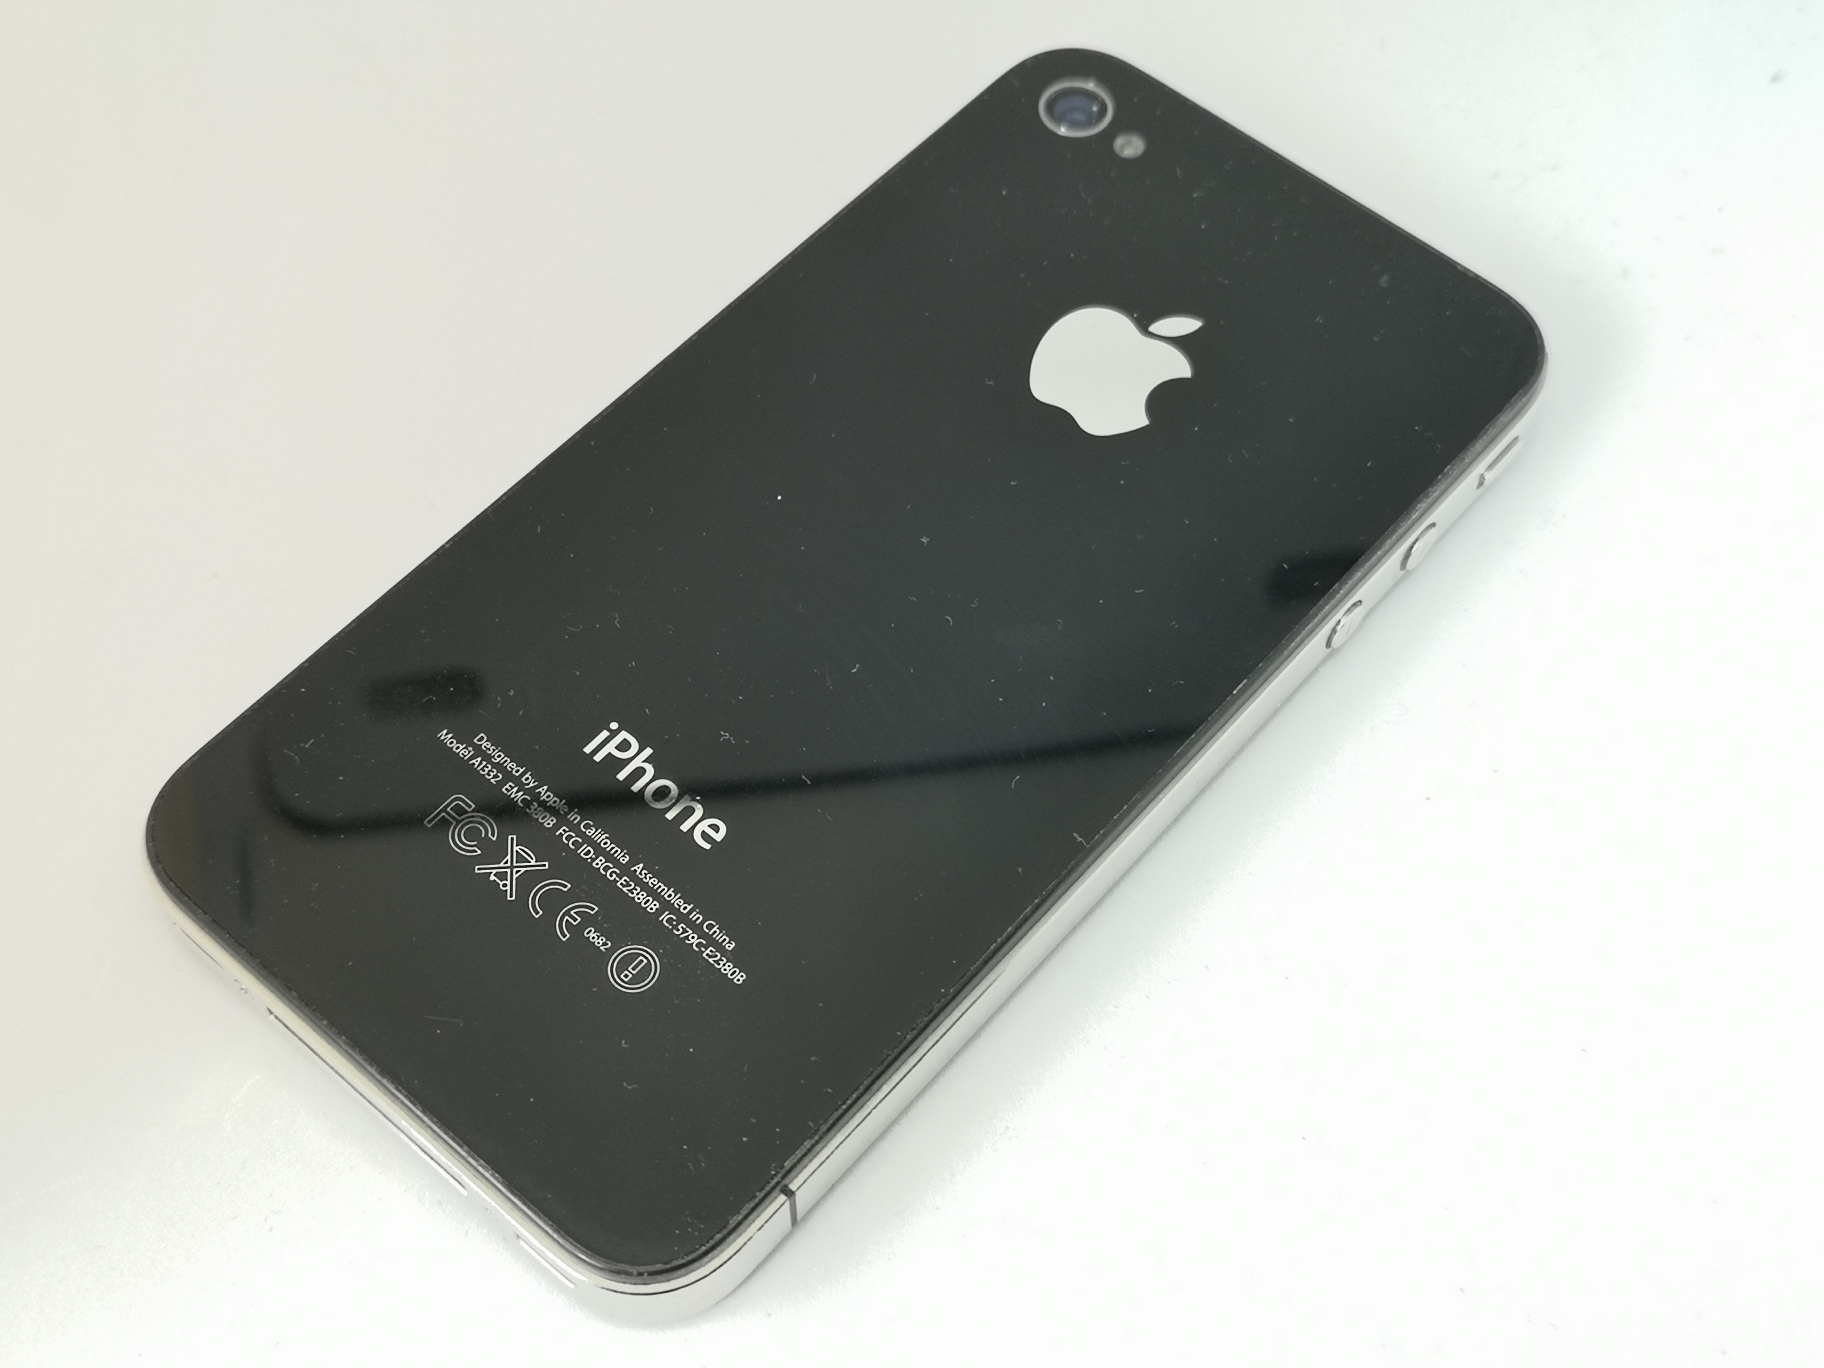 Apple iPhone 4 Review - Brand New Generation Mobile